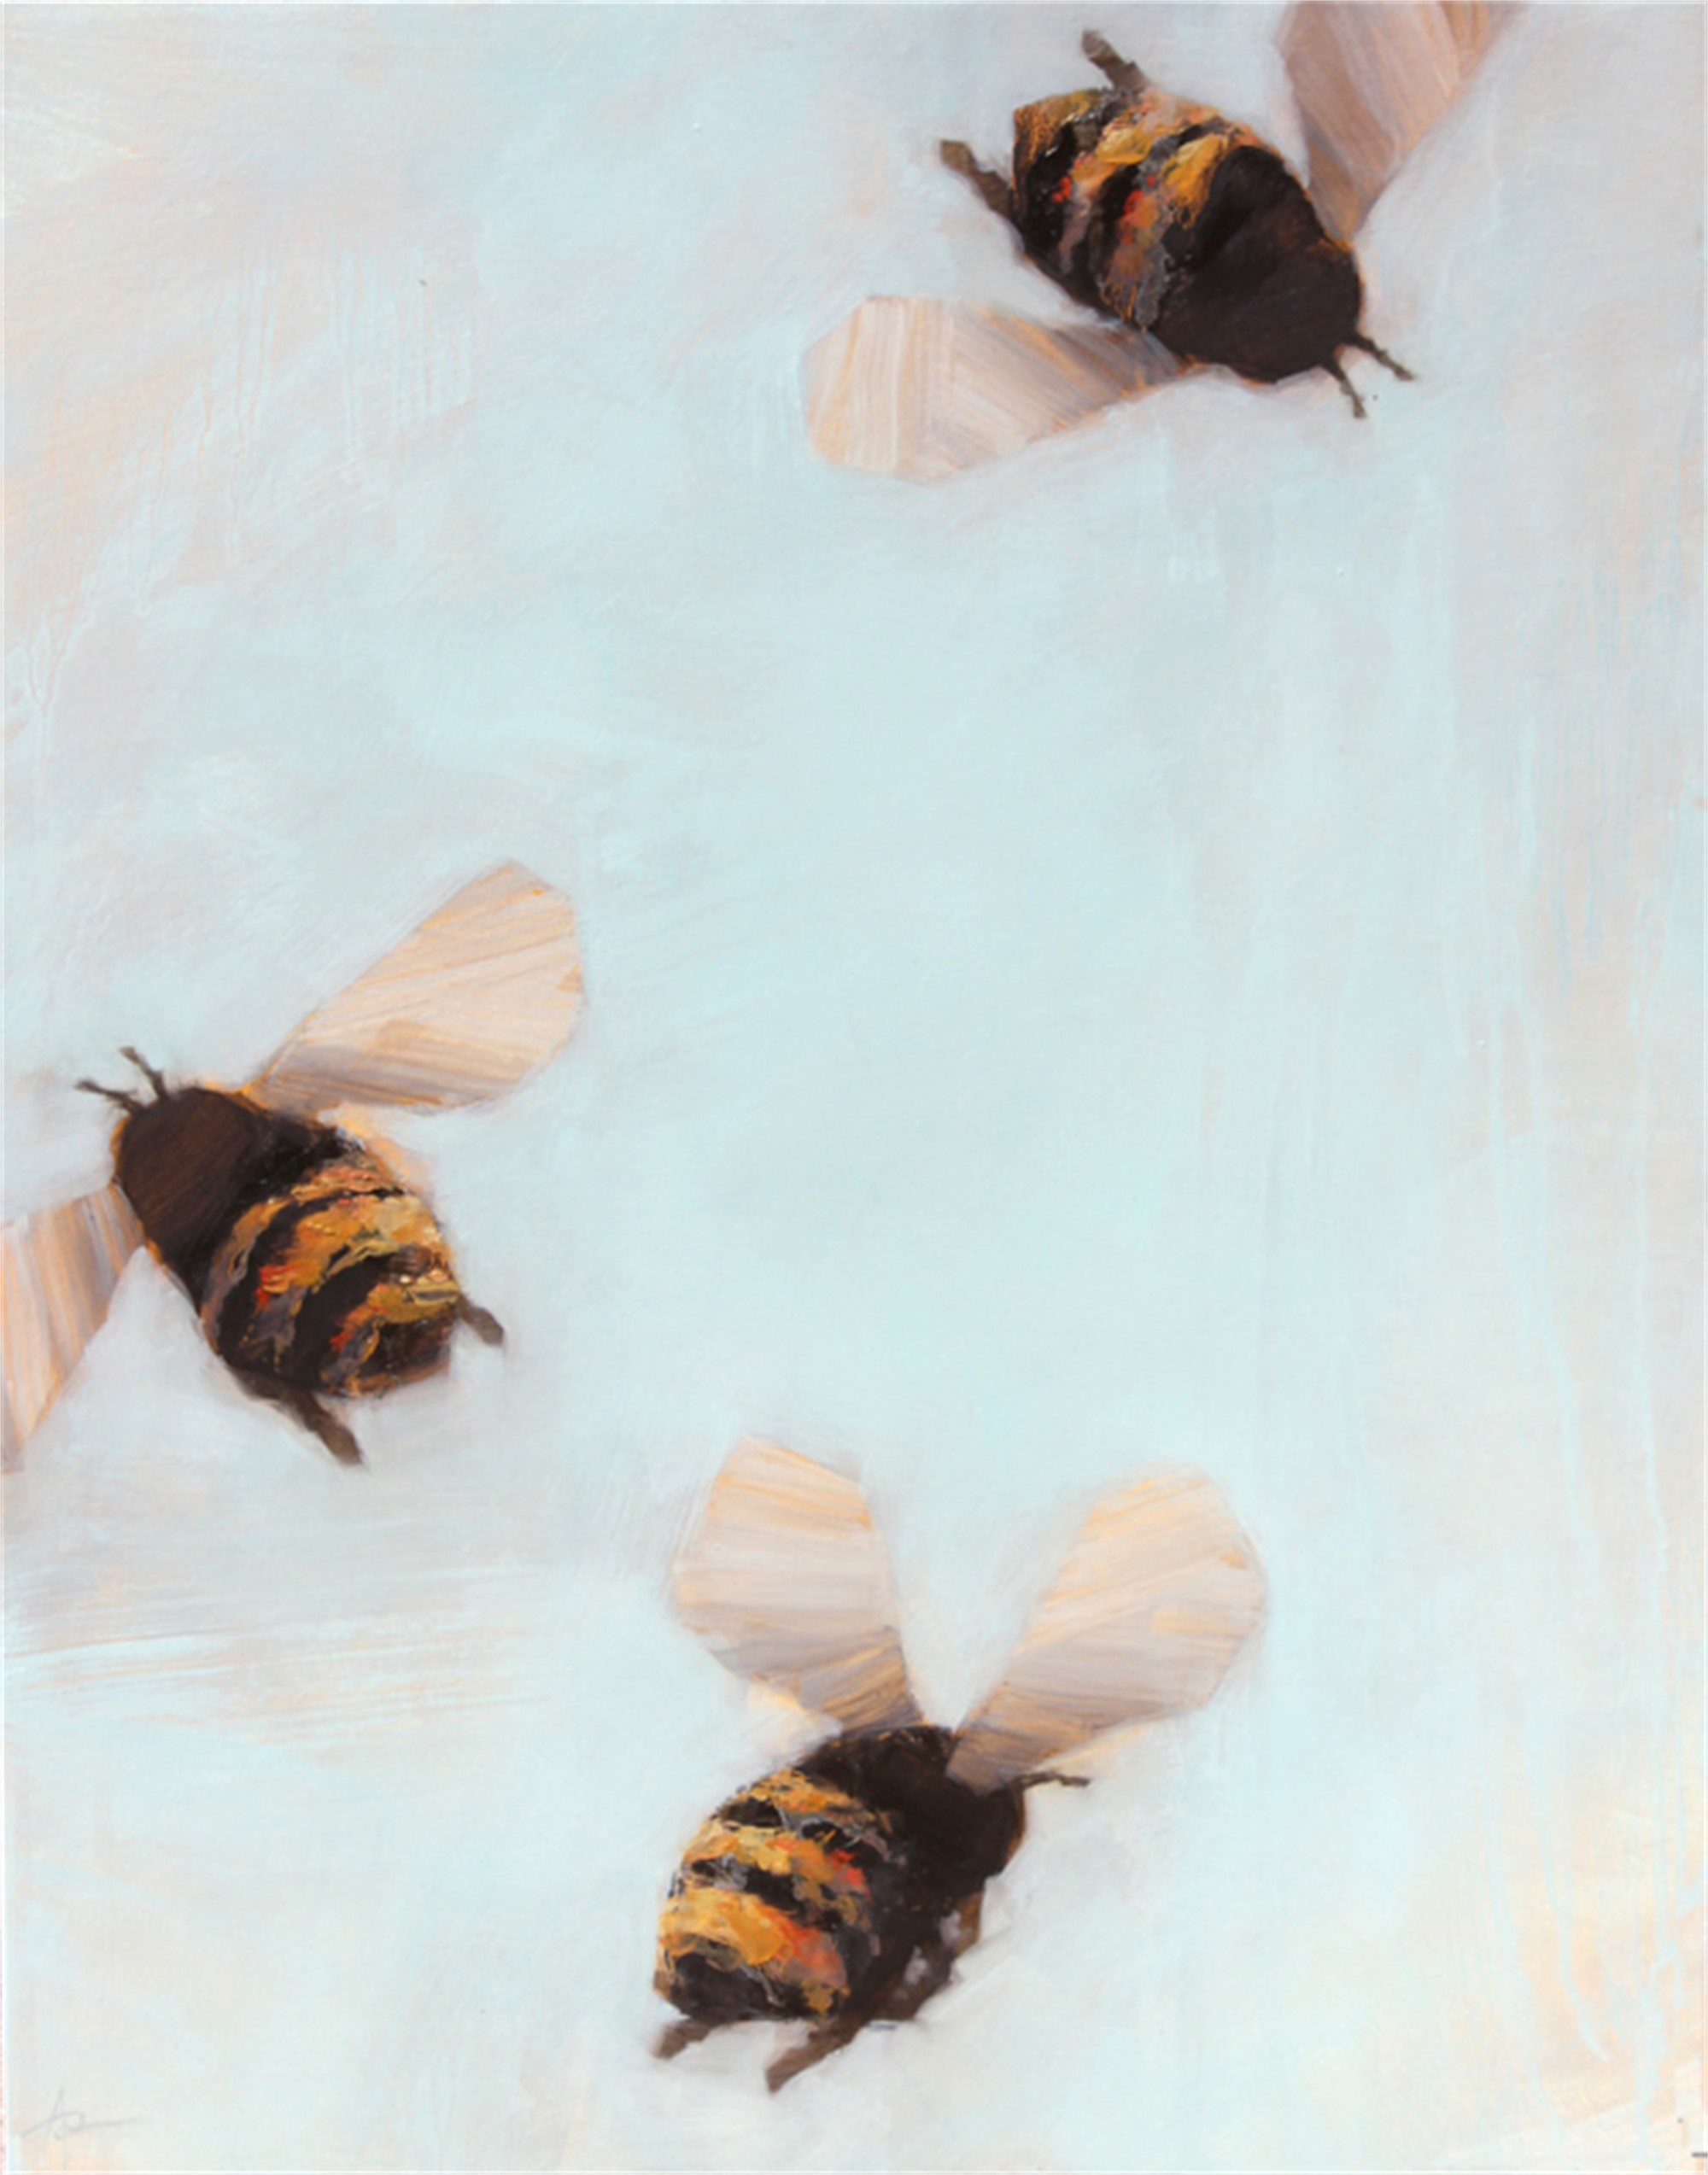 Bees 99 AB by Angie Renfro